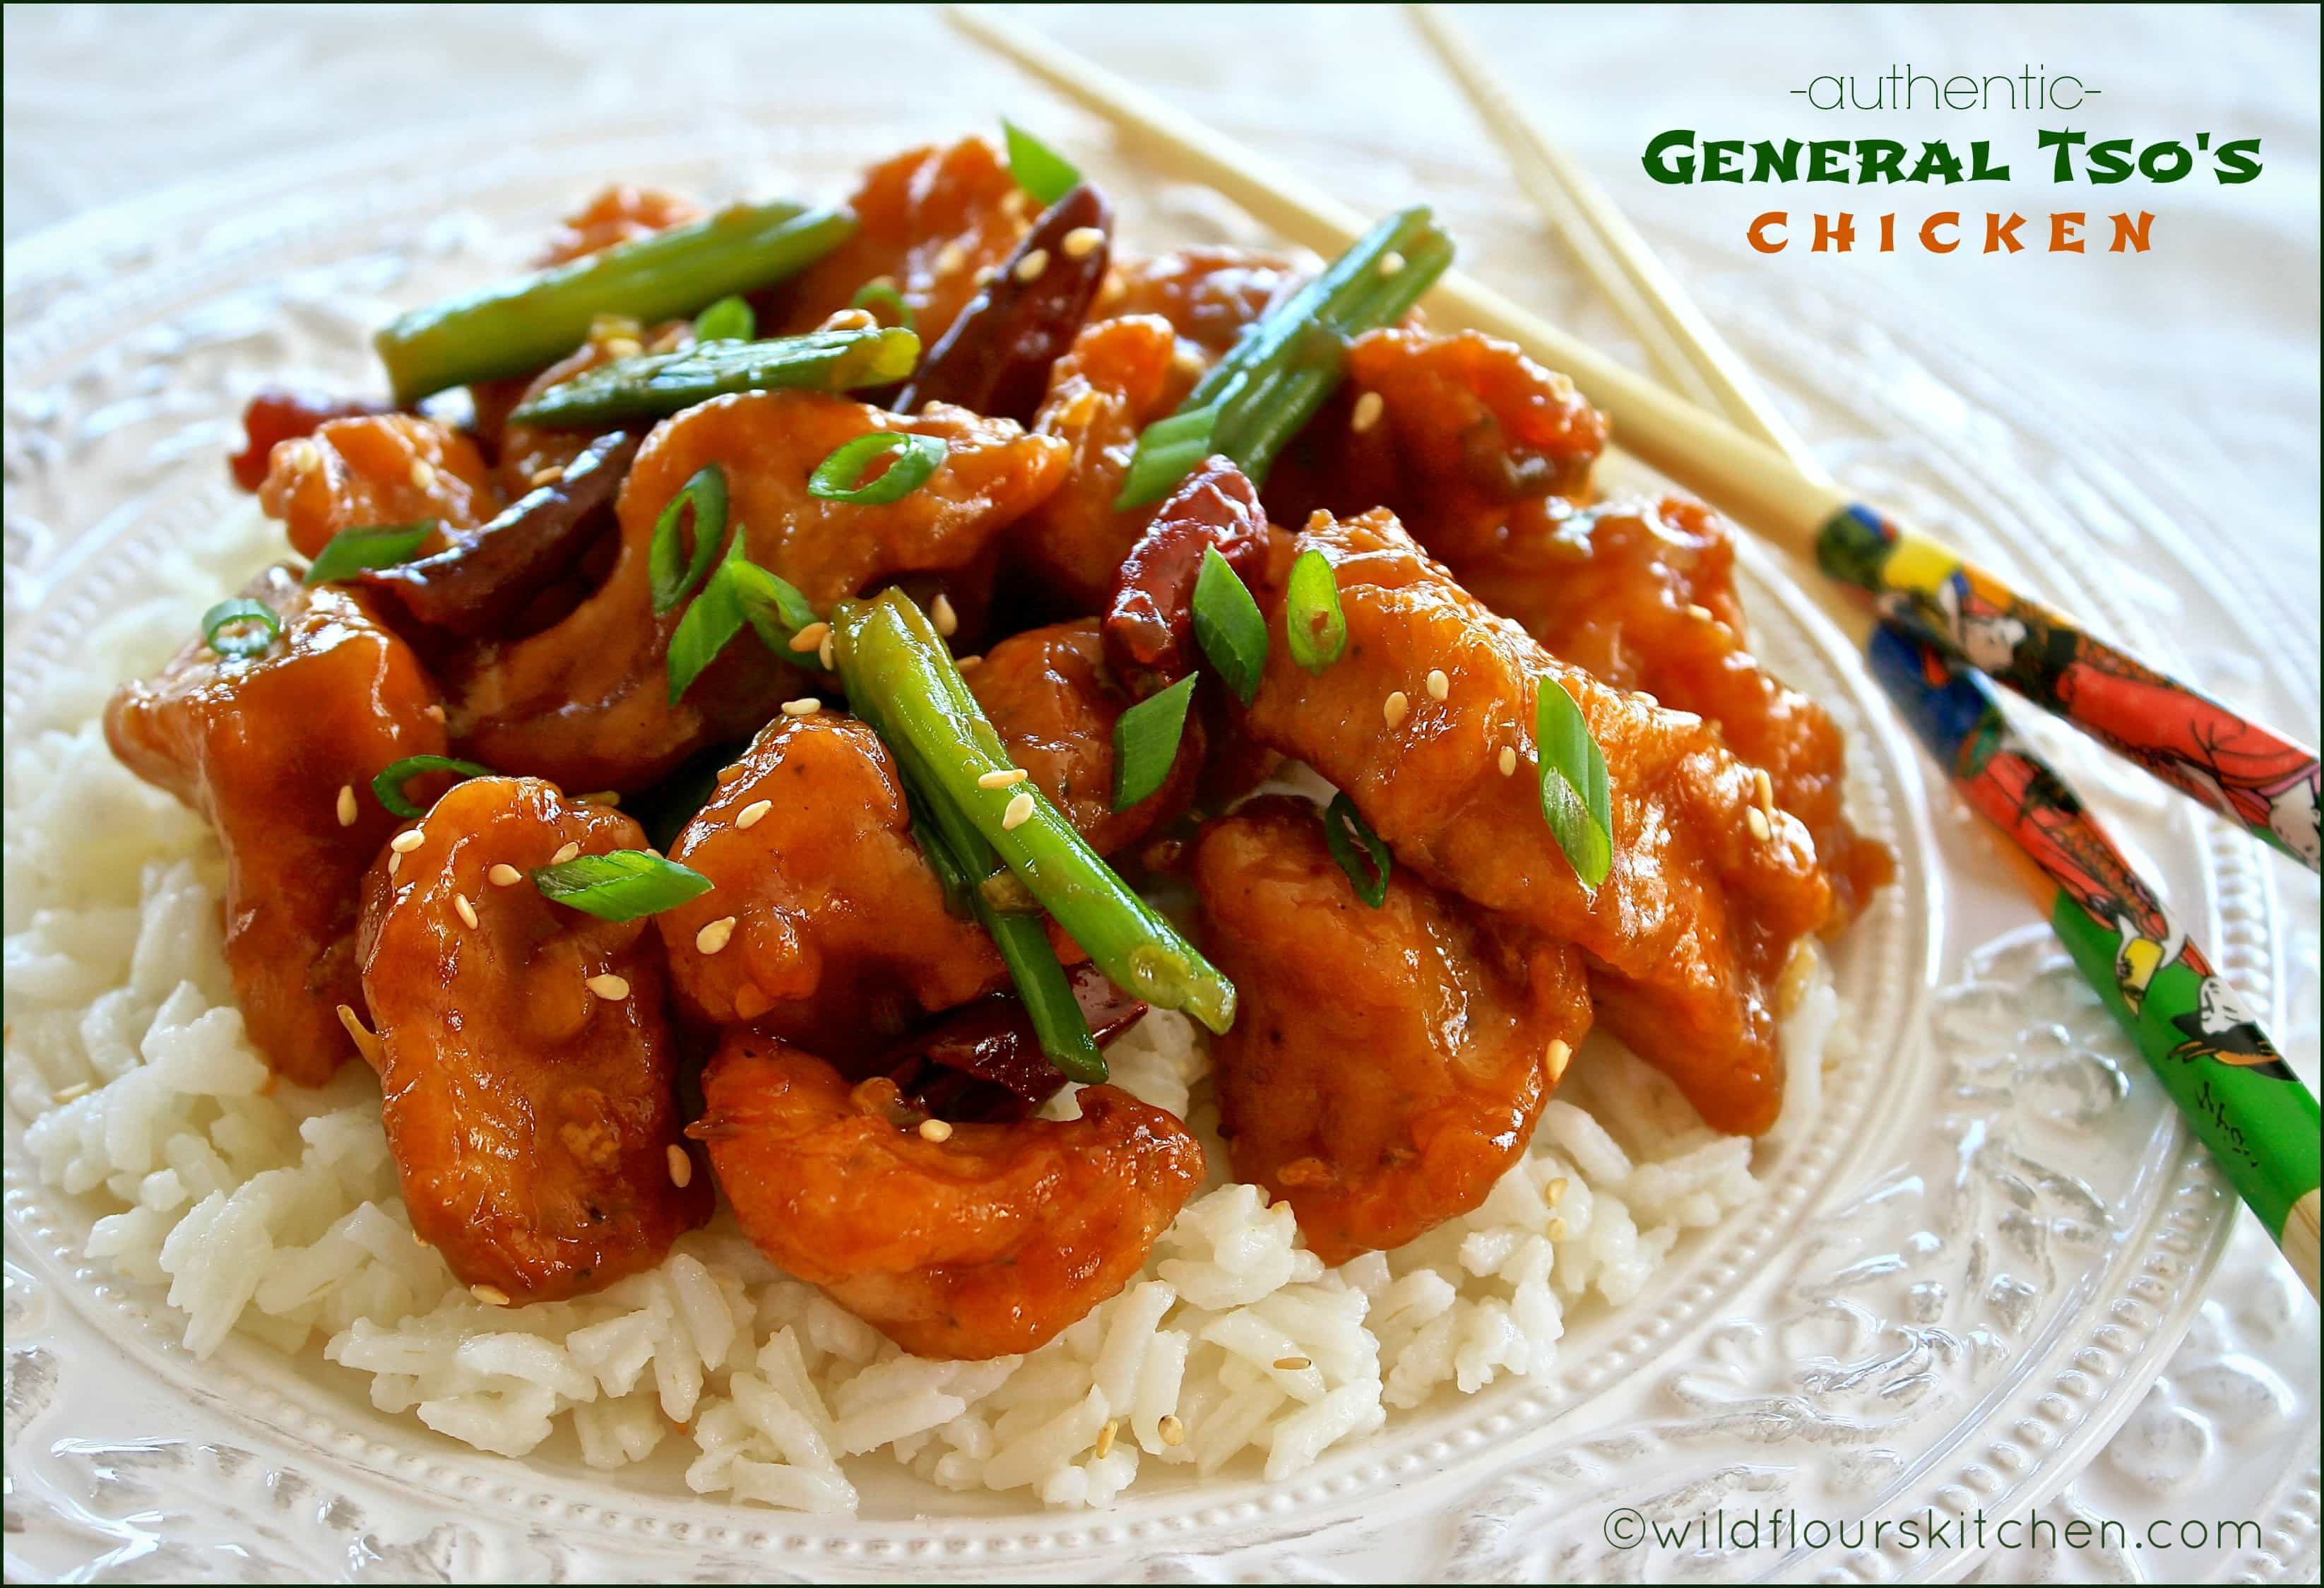 Authentic General Tso's Chicken with Green Onions & Dried Red Chili ...